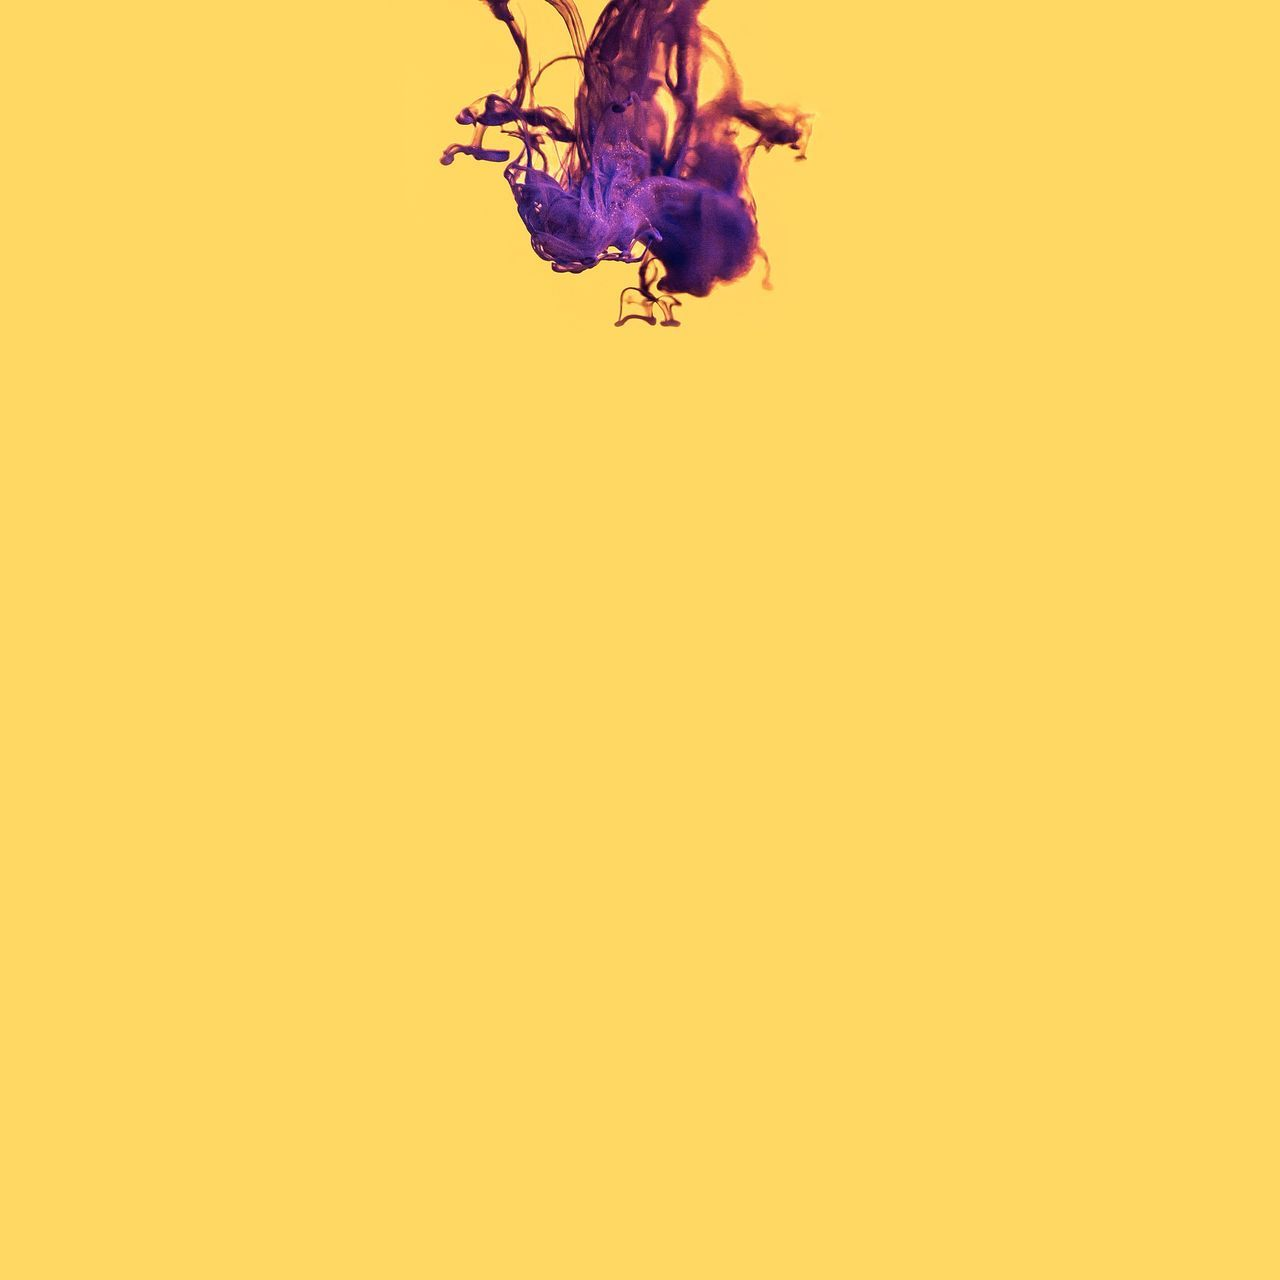 Yellow Mid-air Studio Shot Abstract Flying Motion Yellow Background Vitality Colored Background Ethereal Backgrounds Multi Colored Fragility No People Close-up Dissolving